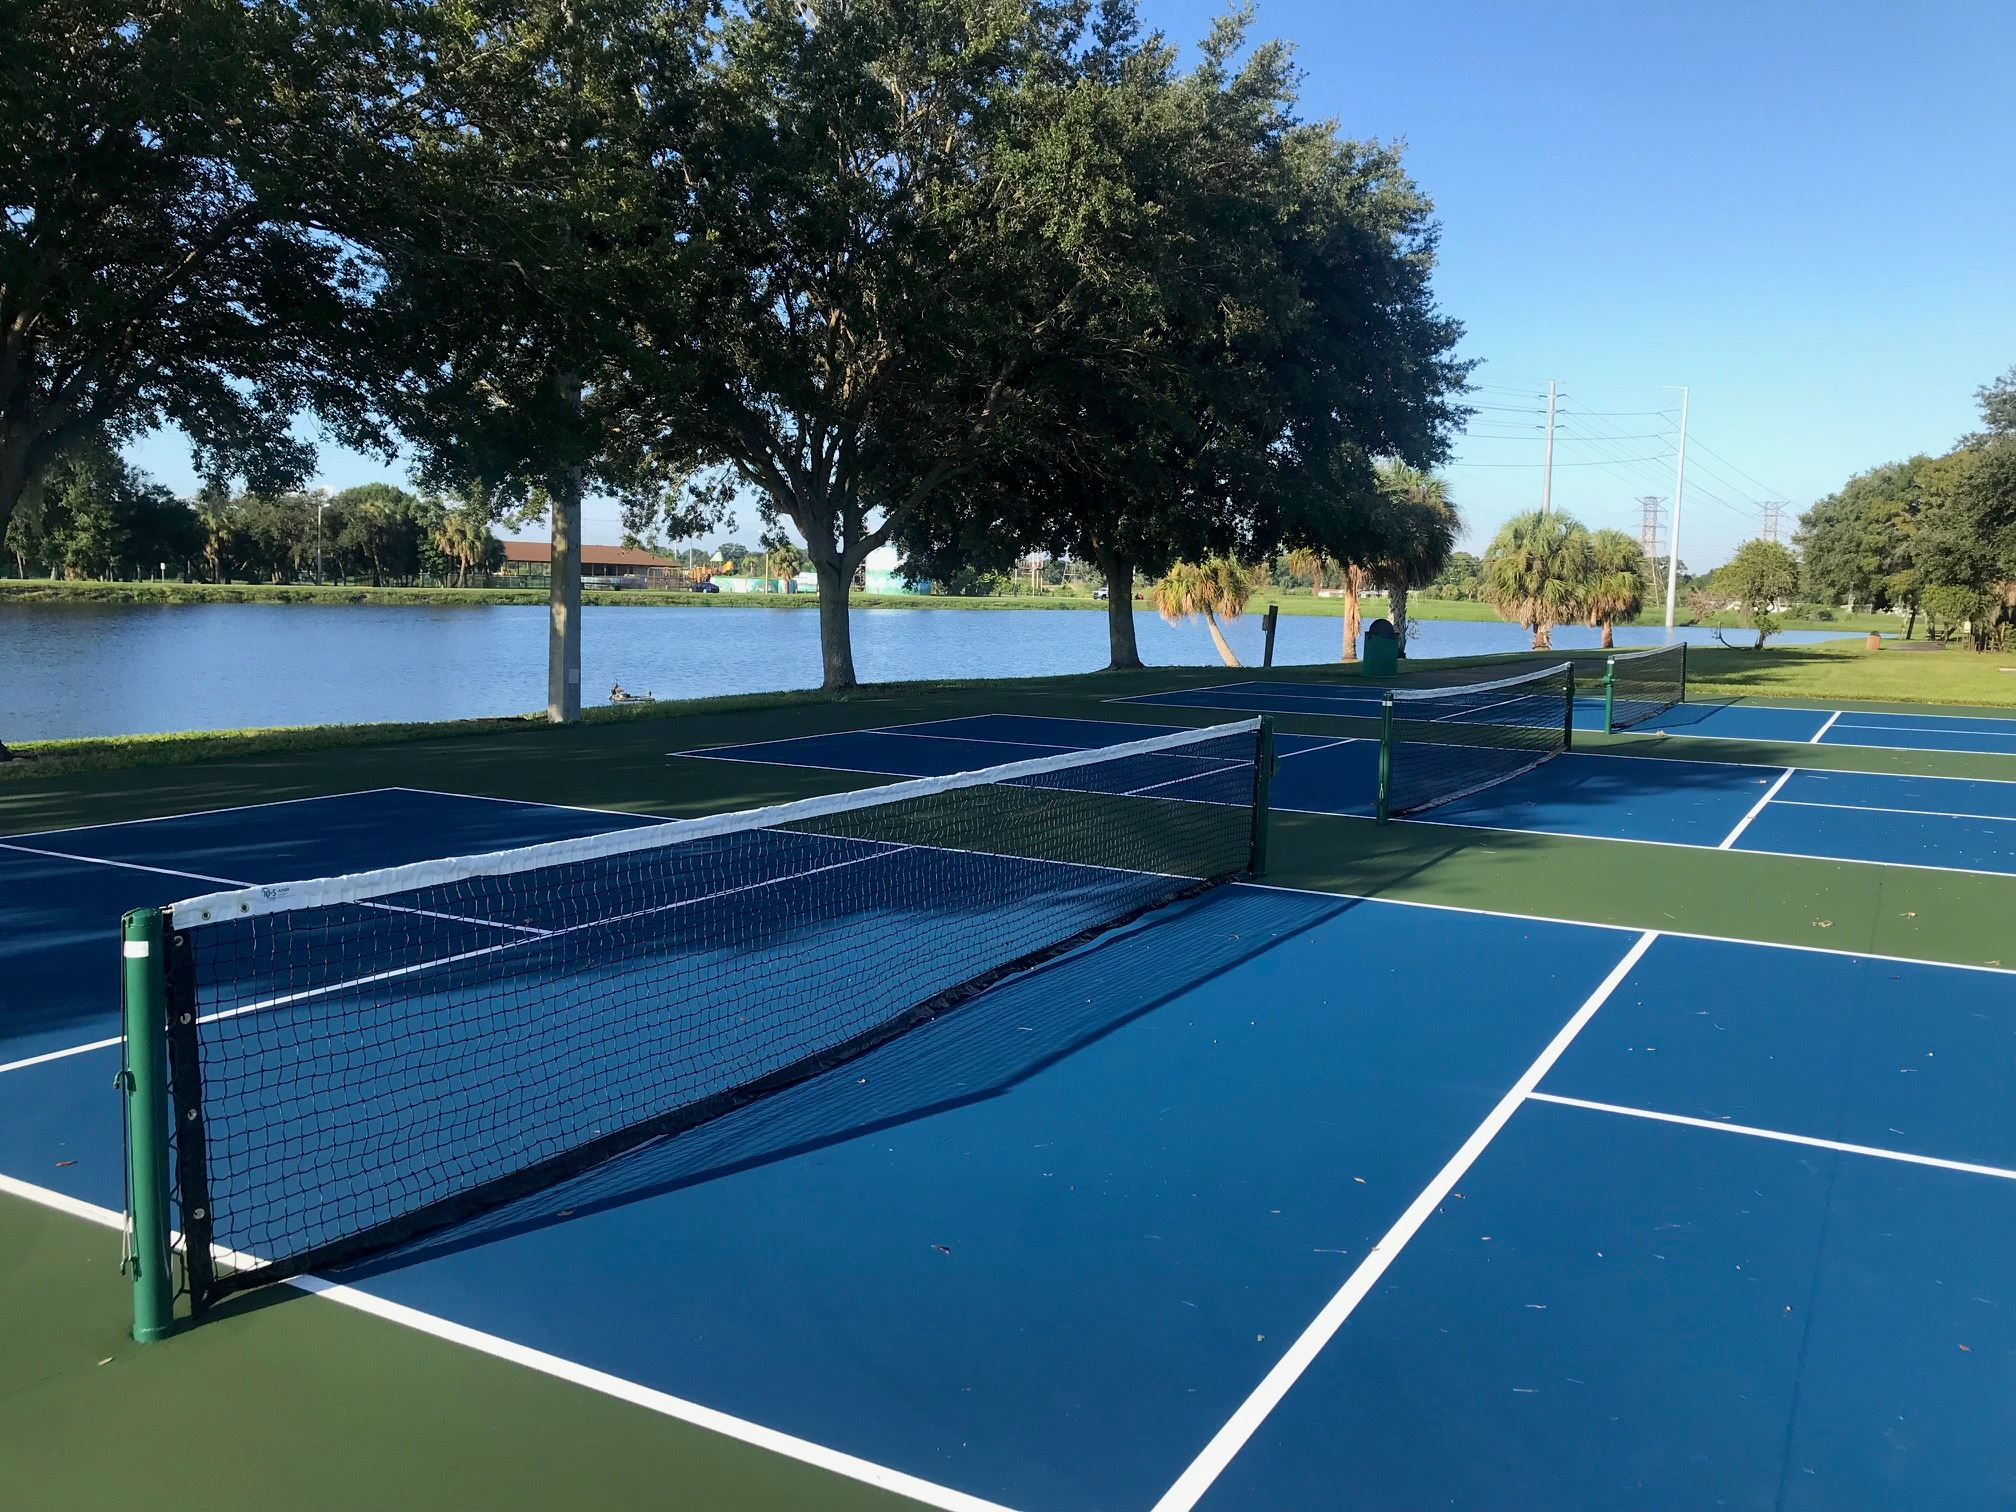 Pickleball Court at Bicentennial Park